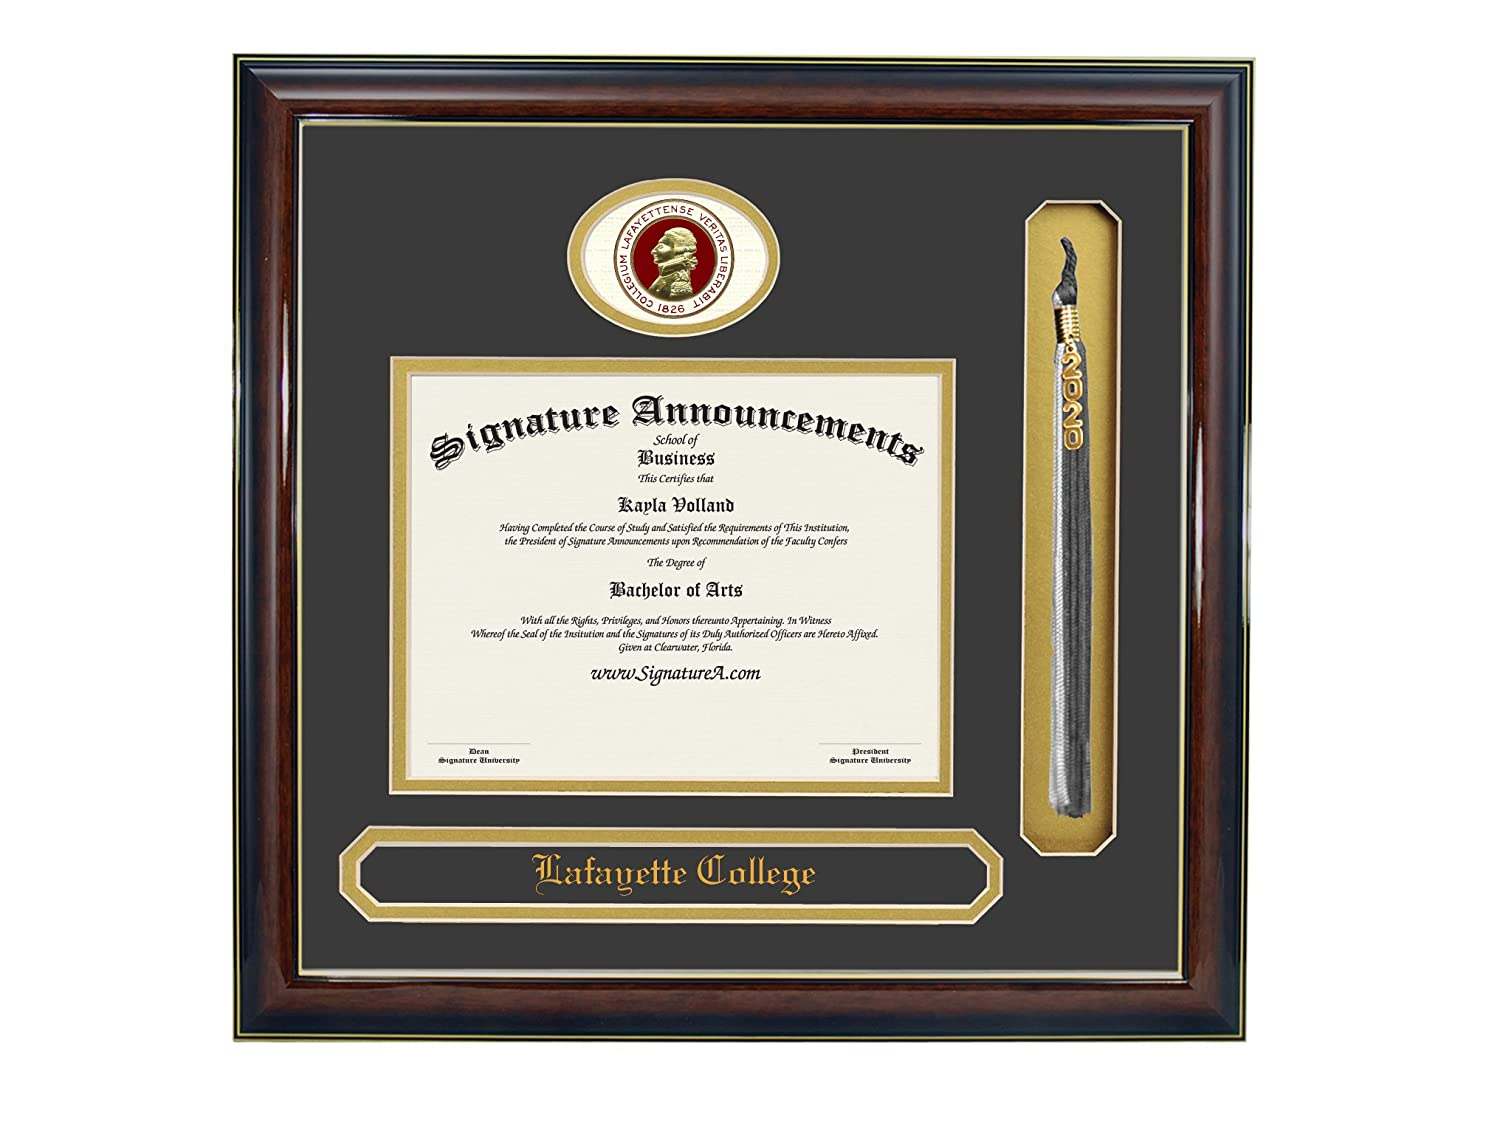 Signature Announcements Lafayette College Undergraduate Sculpted Foil Seal Name /& Tassel Graduation Diploma Frame 20 x 20 Gloss Mahogany with Gold Accent